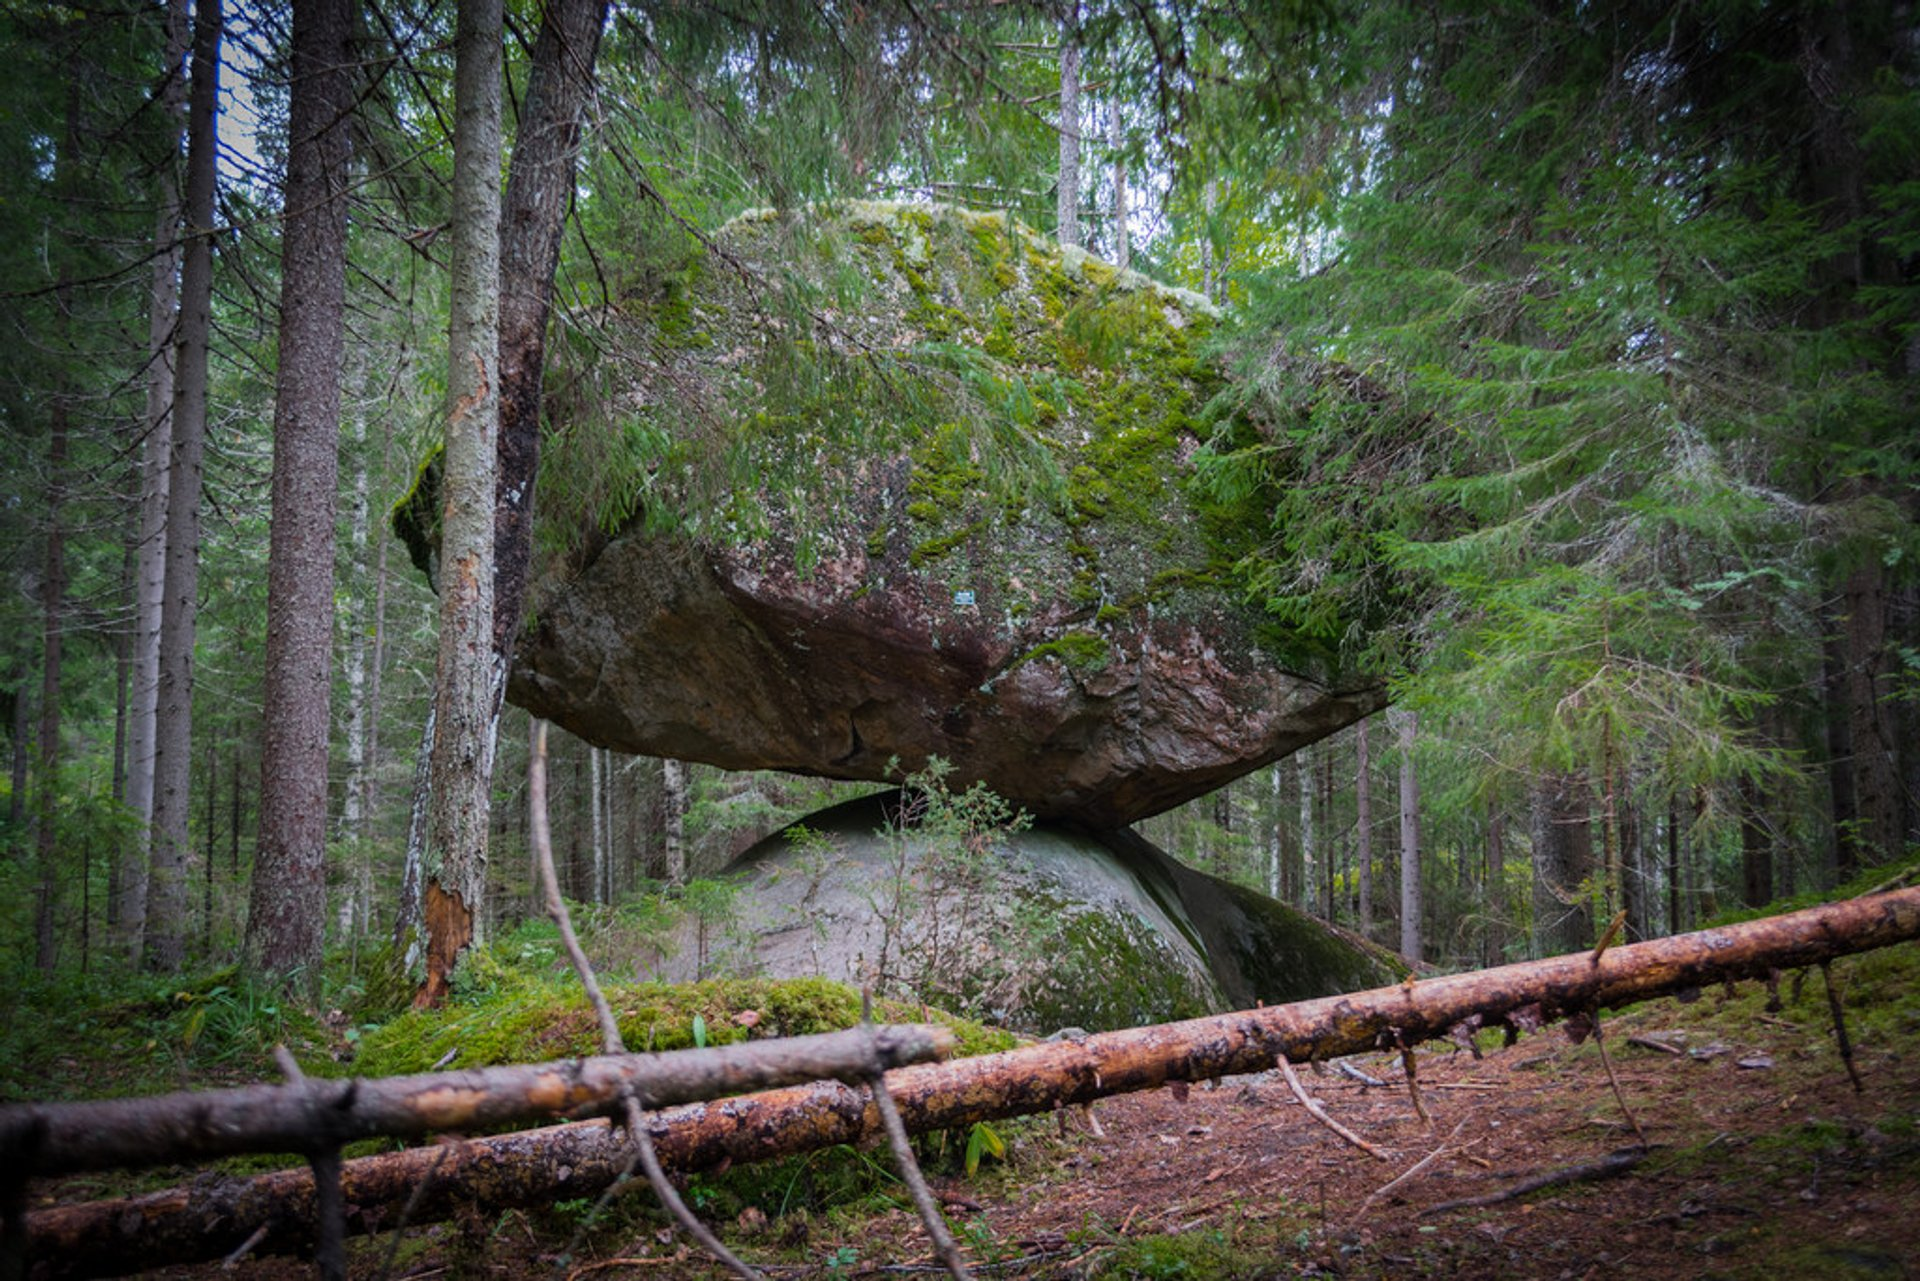 Kummakivi Balancing Rock in Finland 2020 - Best Time